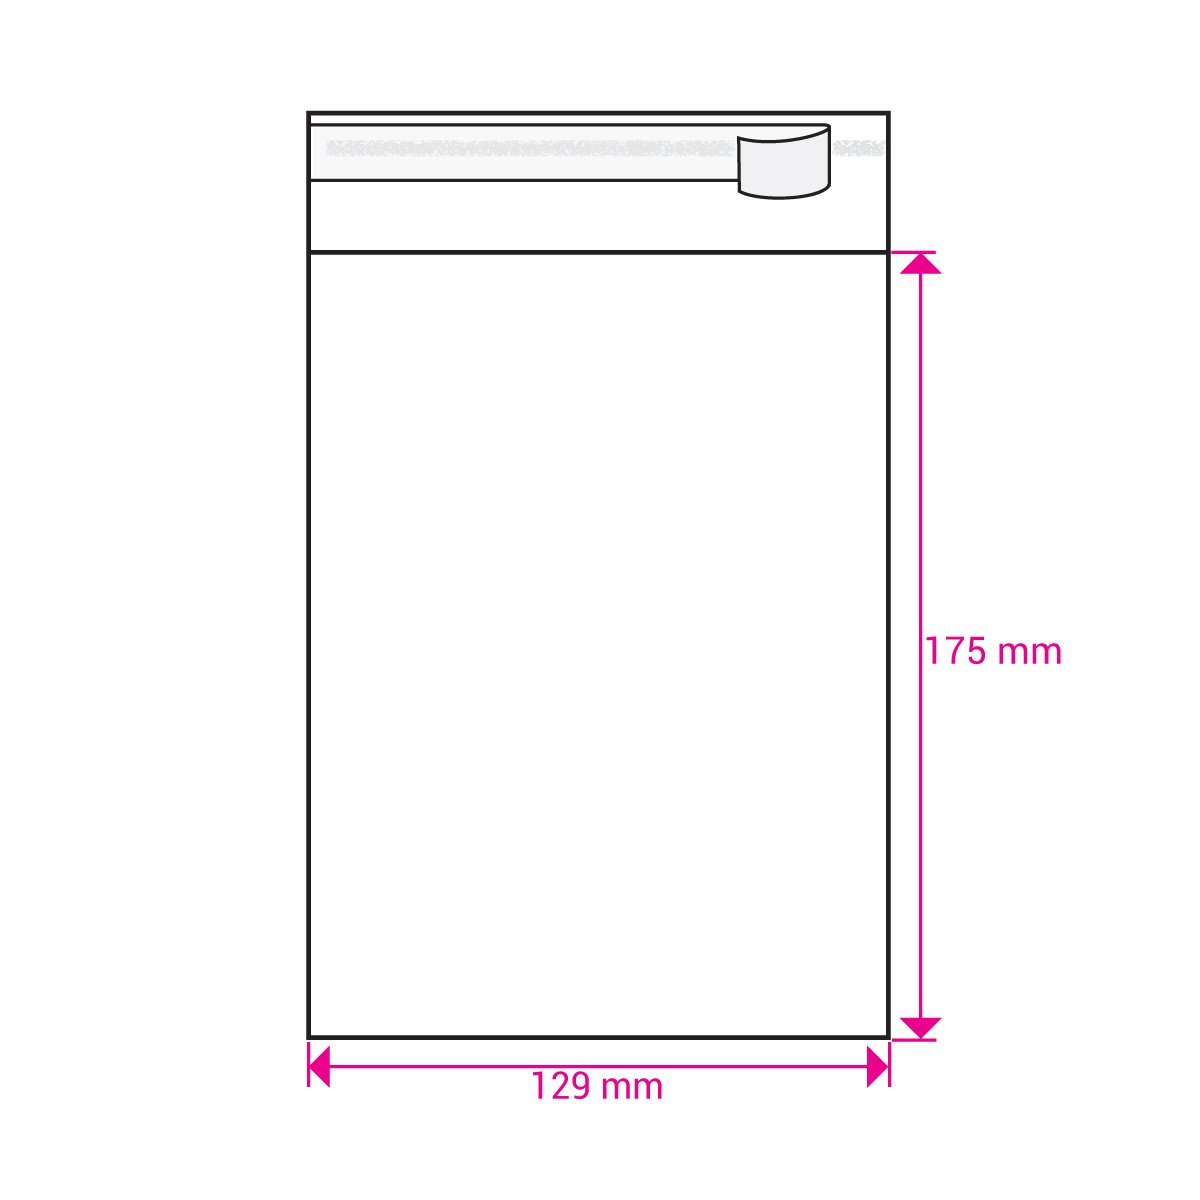 CLEAR CELLO BAGS to fit: 125 x 175 mm (SELF ADHESIVE)